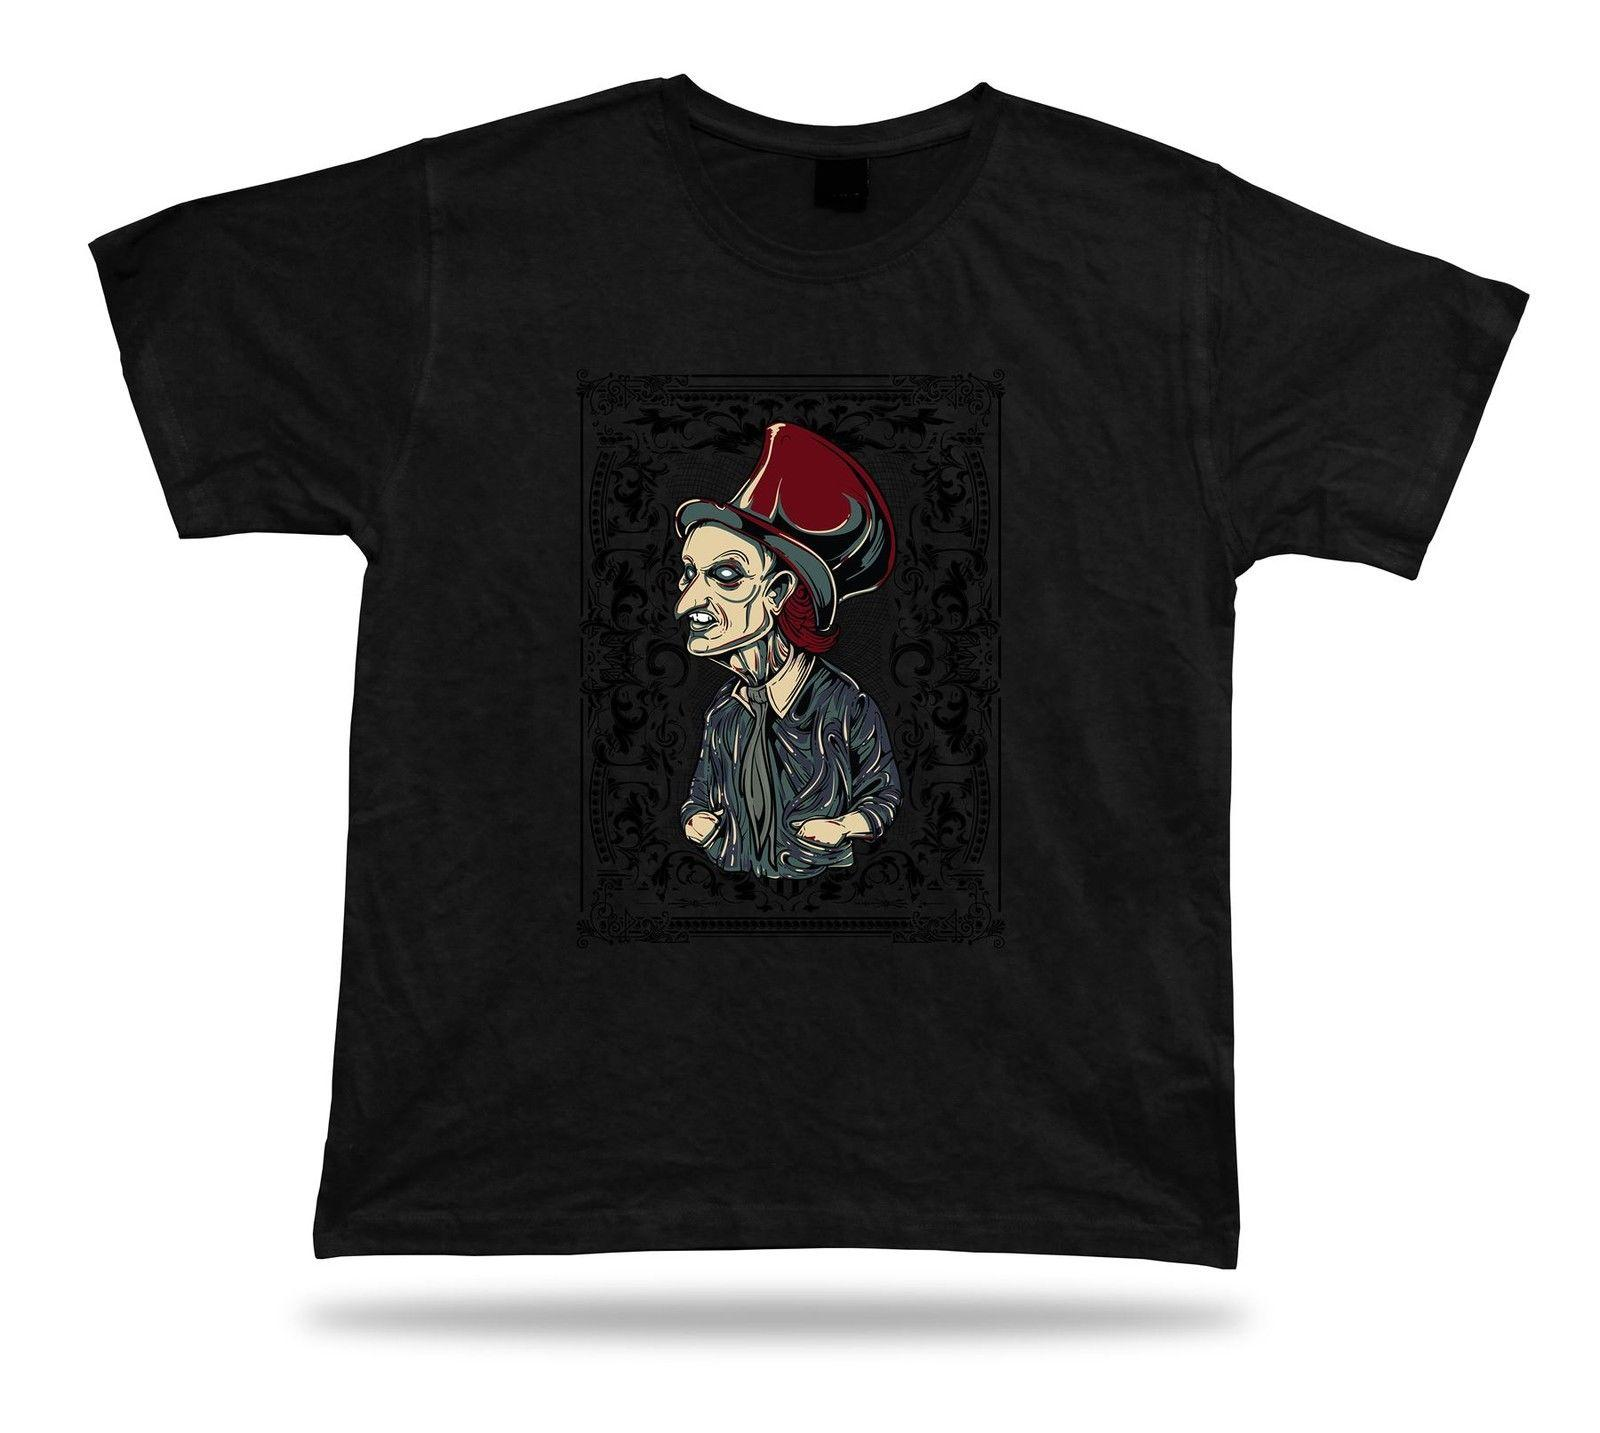 Tshirt Tee Shirt Birthday Gift Idea Evil Wizard Creep Berton Hat Old Man Stylish T Shirts In A Day Awesome Designs From Besttshirts201805